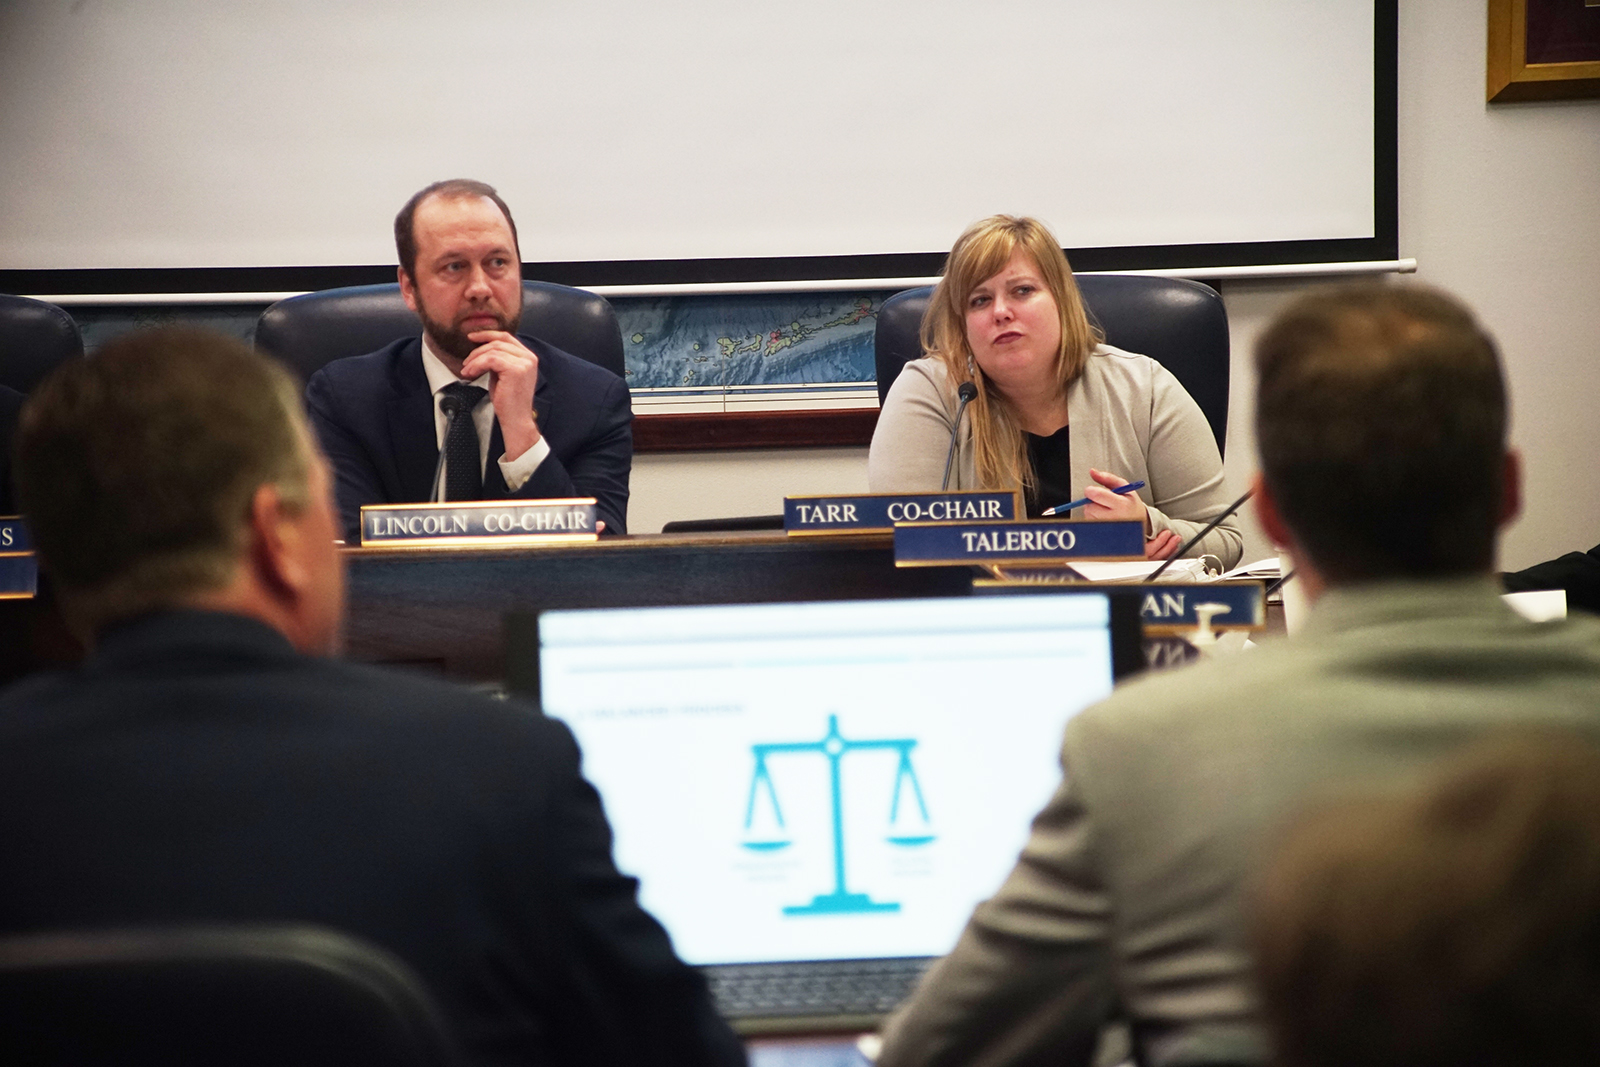 House Resources Committee co-chairs applaud milestone for Alaska LNG